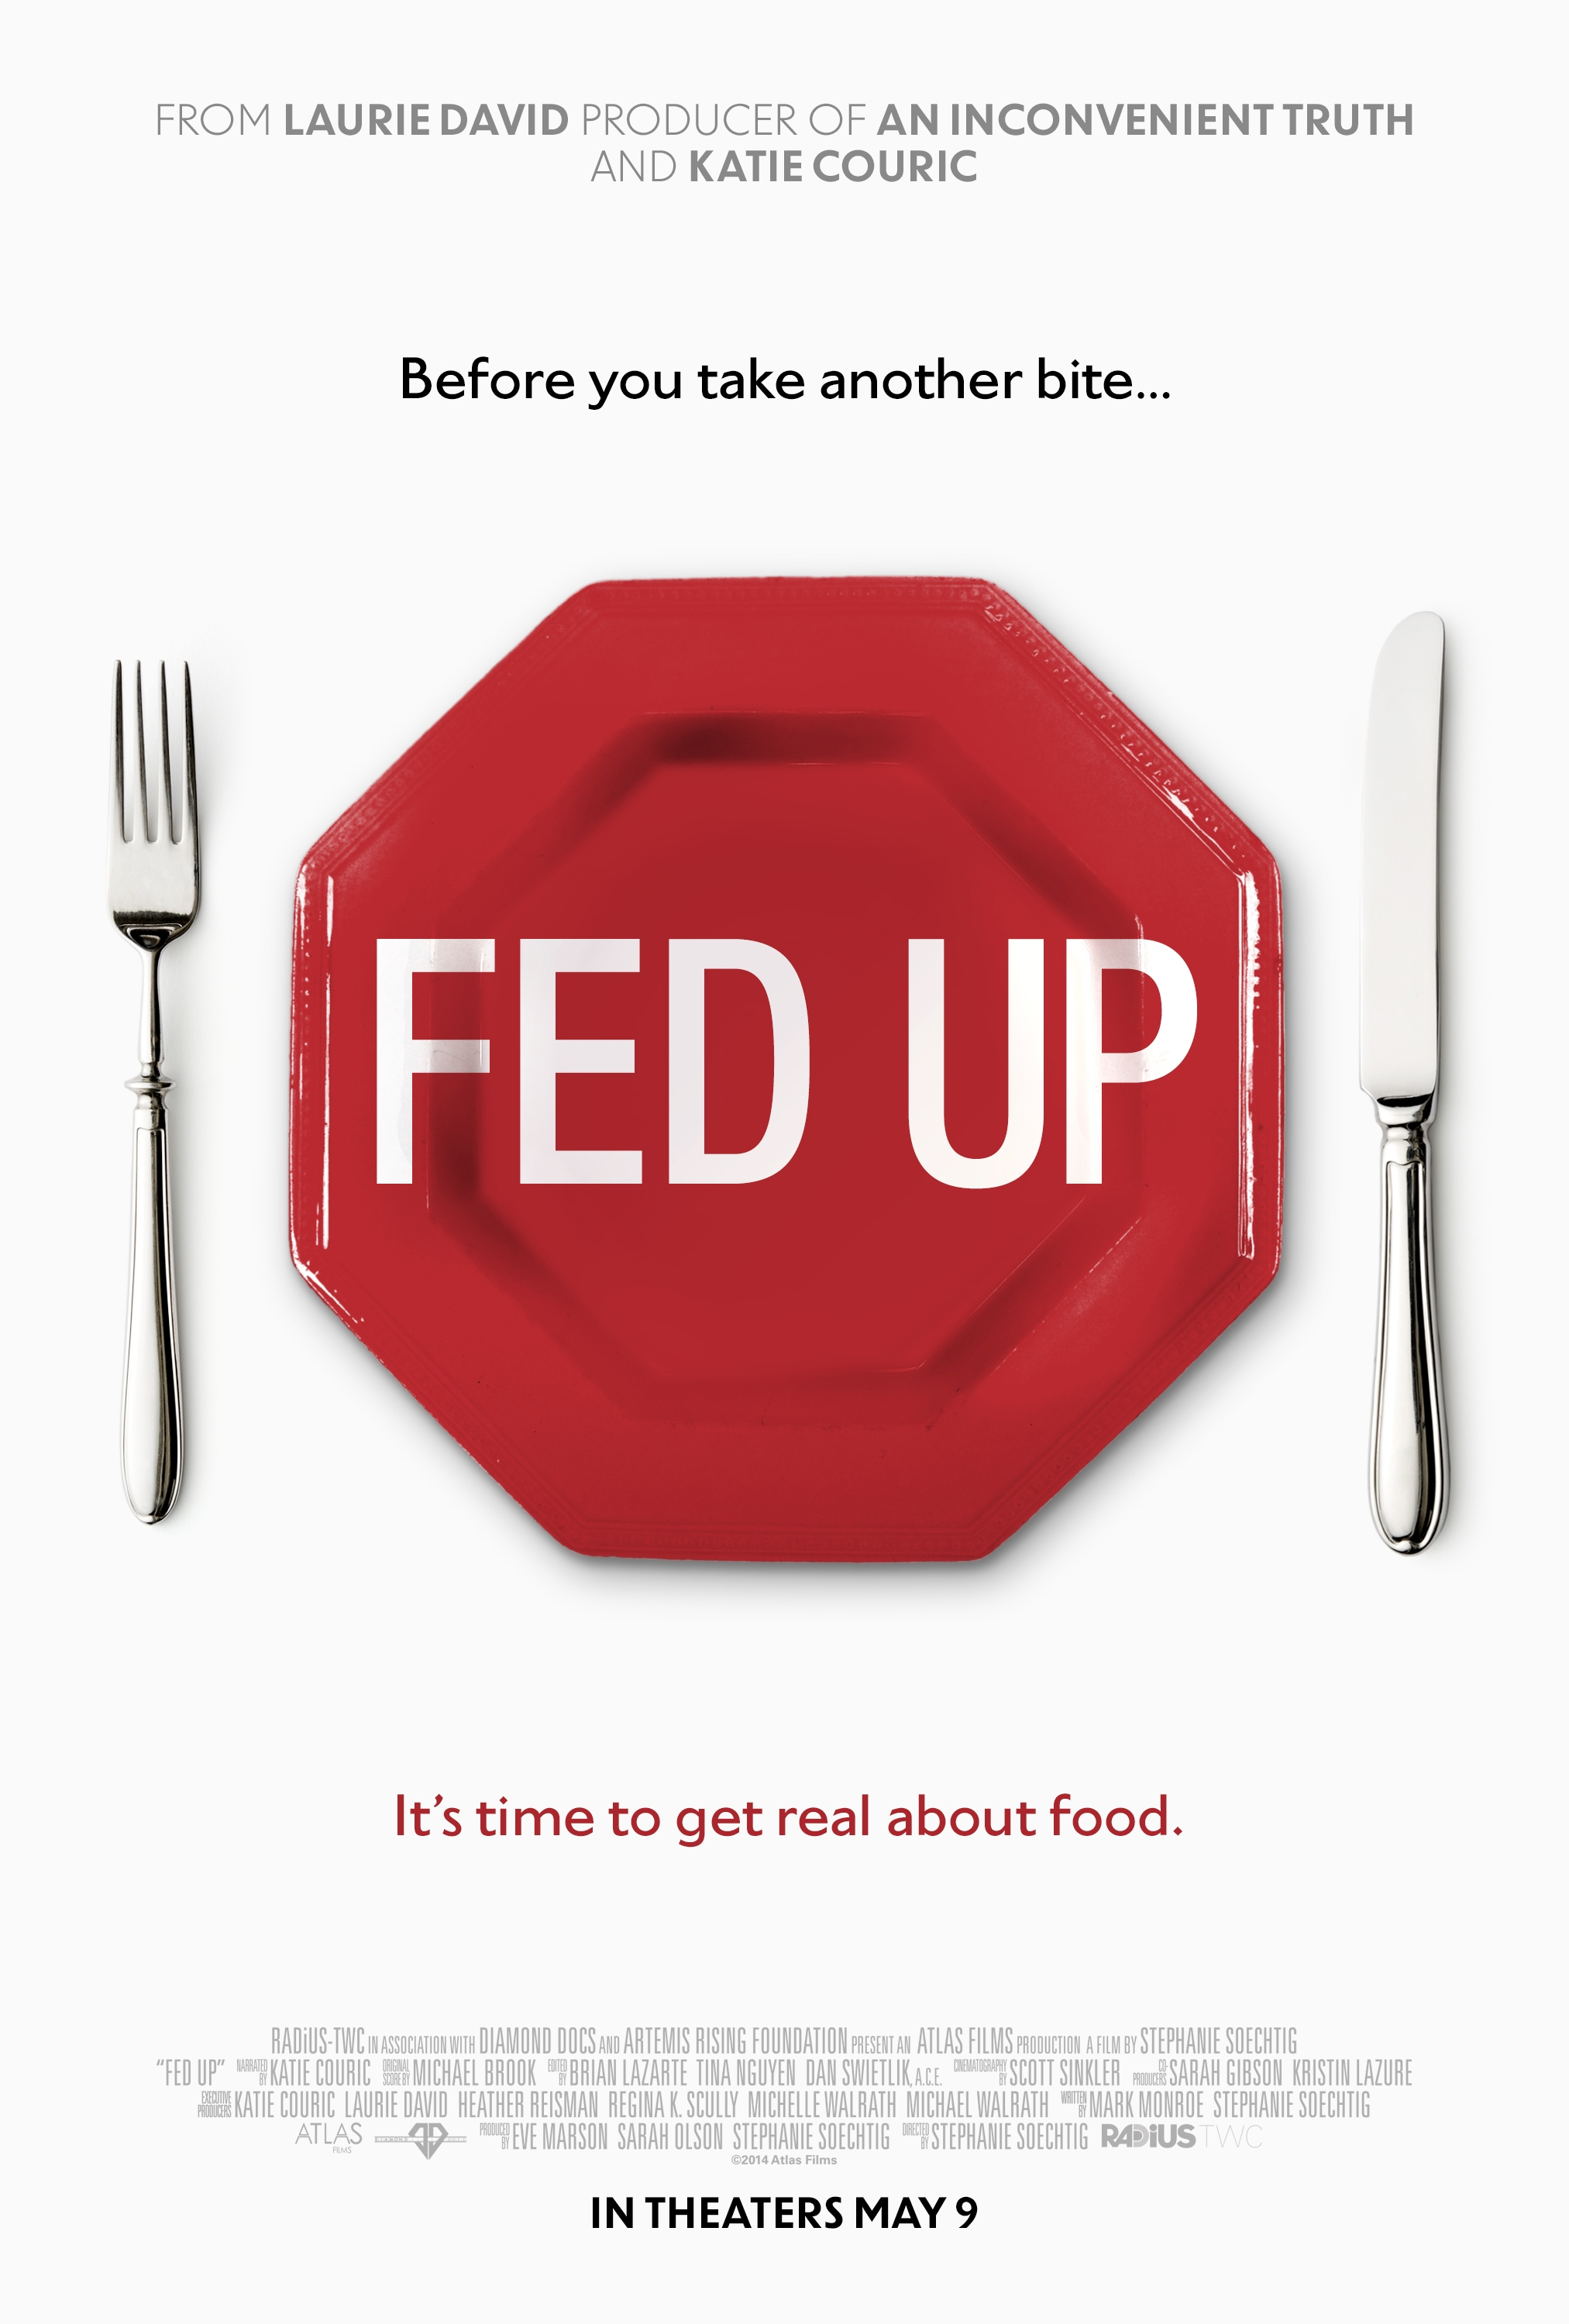 Fed Up: Changing the Way You See Food Forever